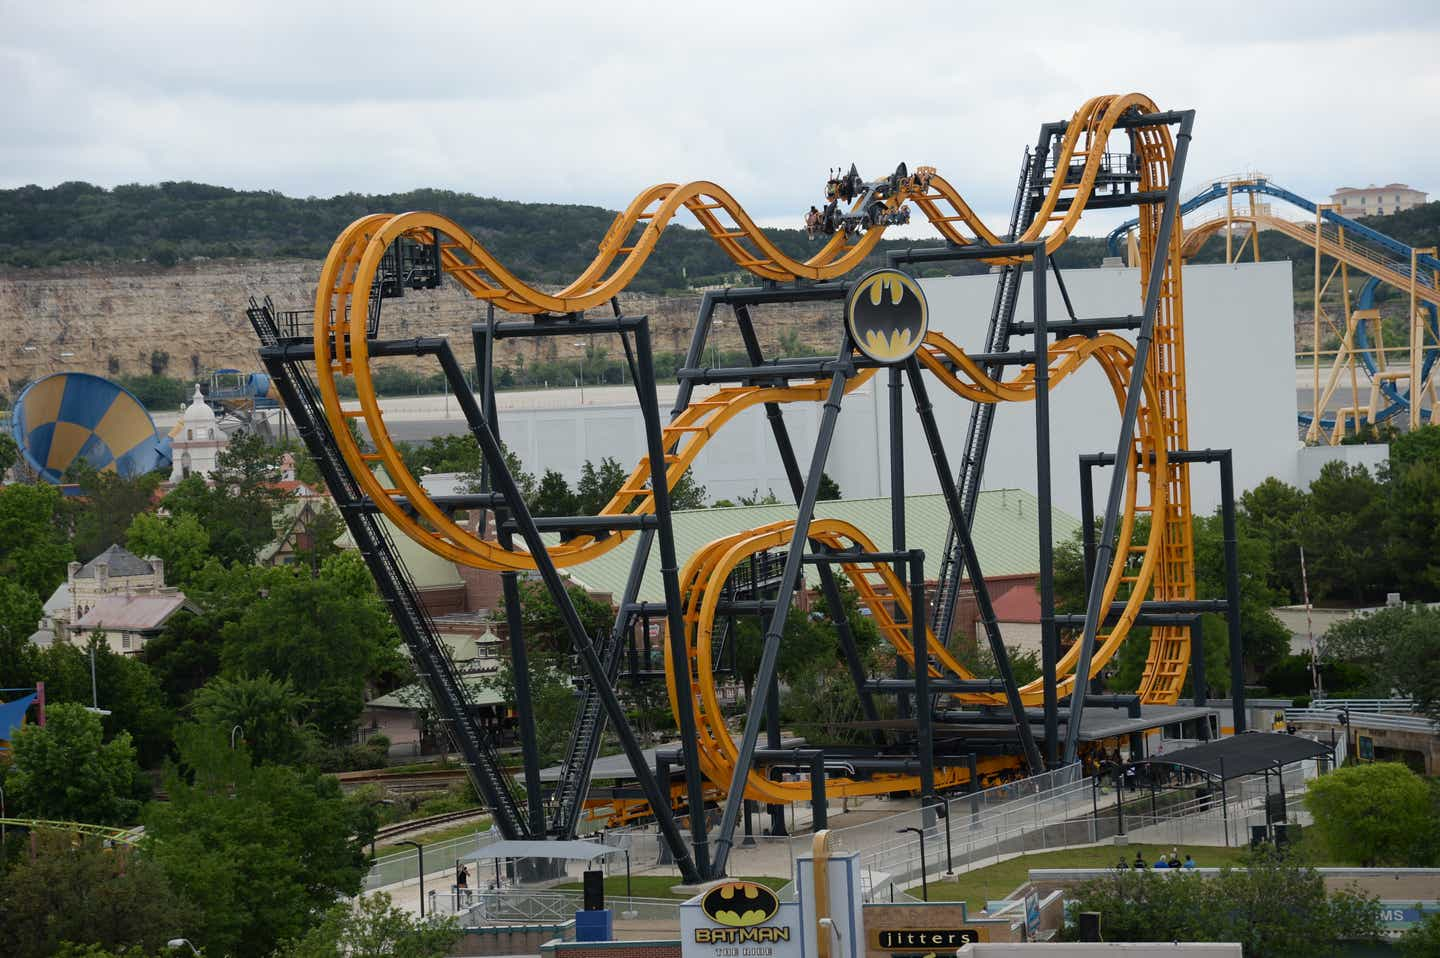 Batman The Ride at Six Flags Fiesta Texas